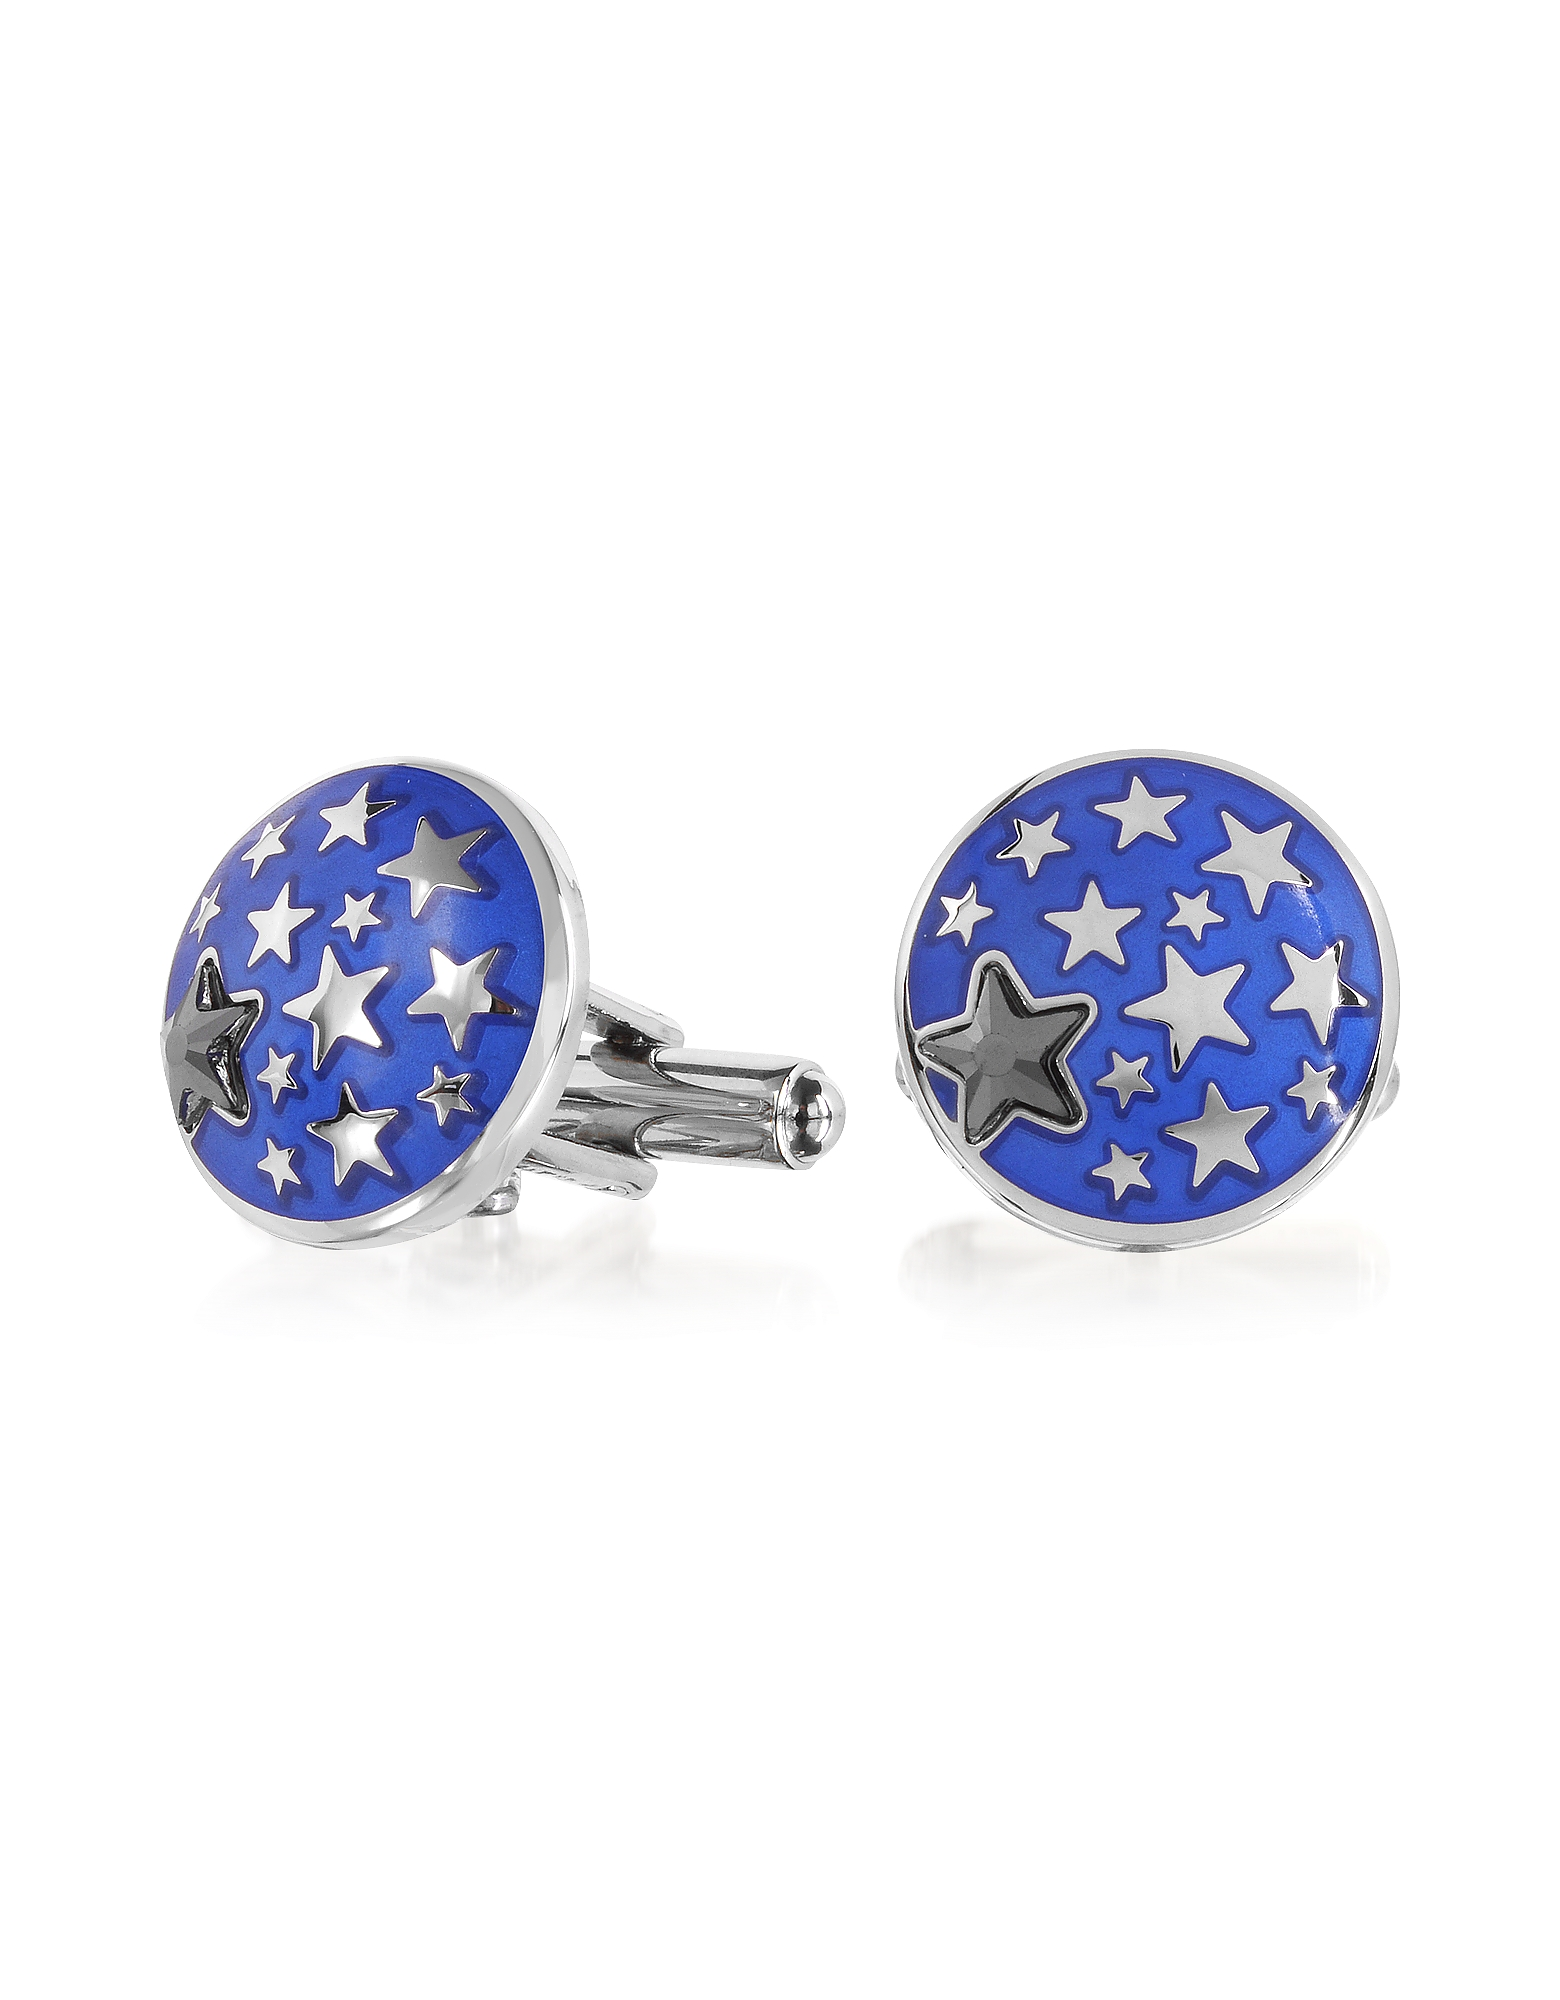 Lumiere Blue Enamel Brass Cufflinks от Forzieri.com INT